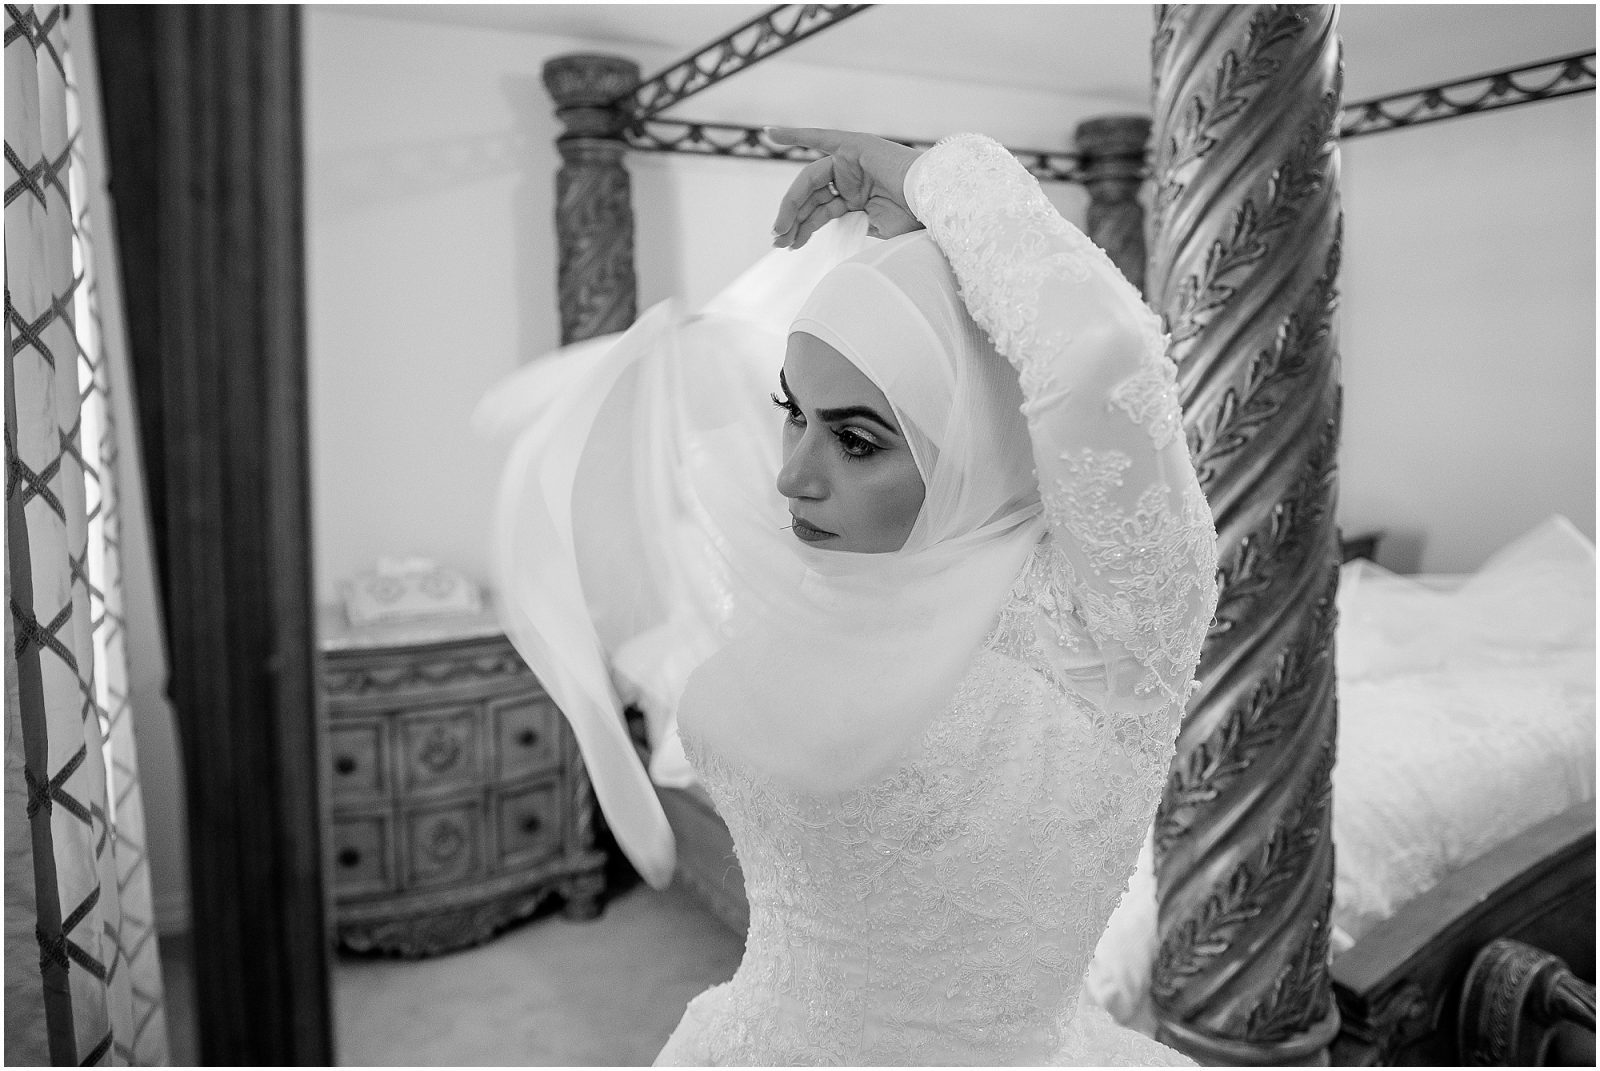 237NourHussein_PinheyForest_Ottawa_Wedding_Photosbyemmah.jpg